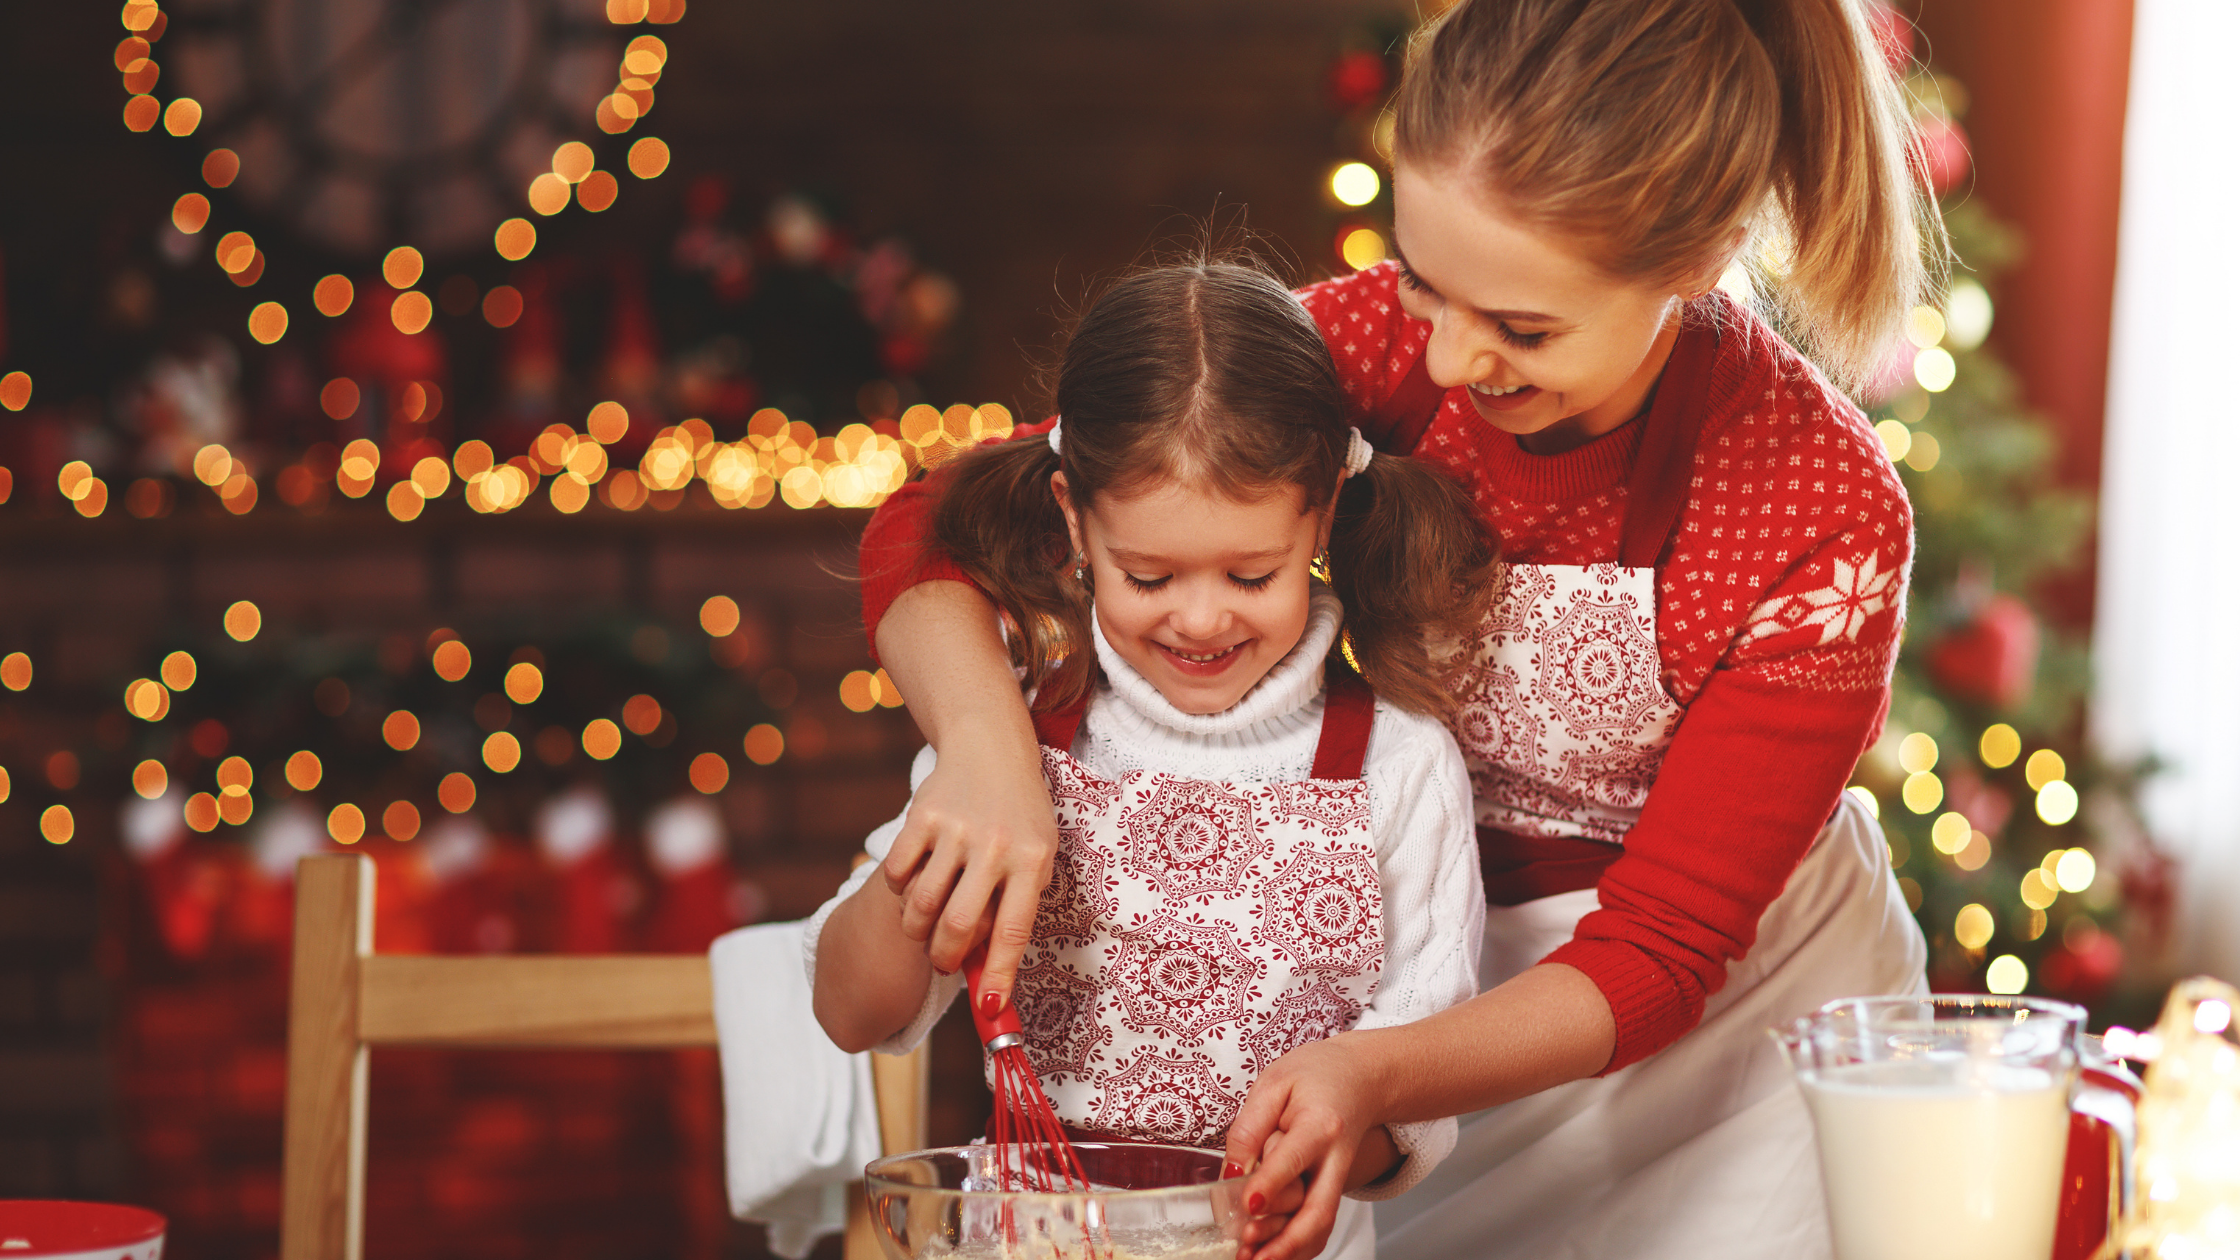 Family Christmas traditions: a mother baking Christmas goody with her daughter in front of a Christmas tree.